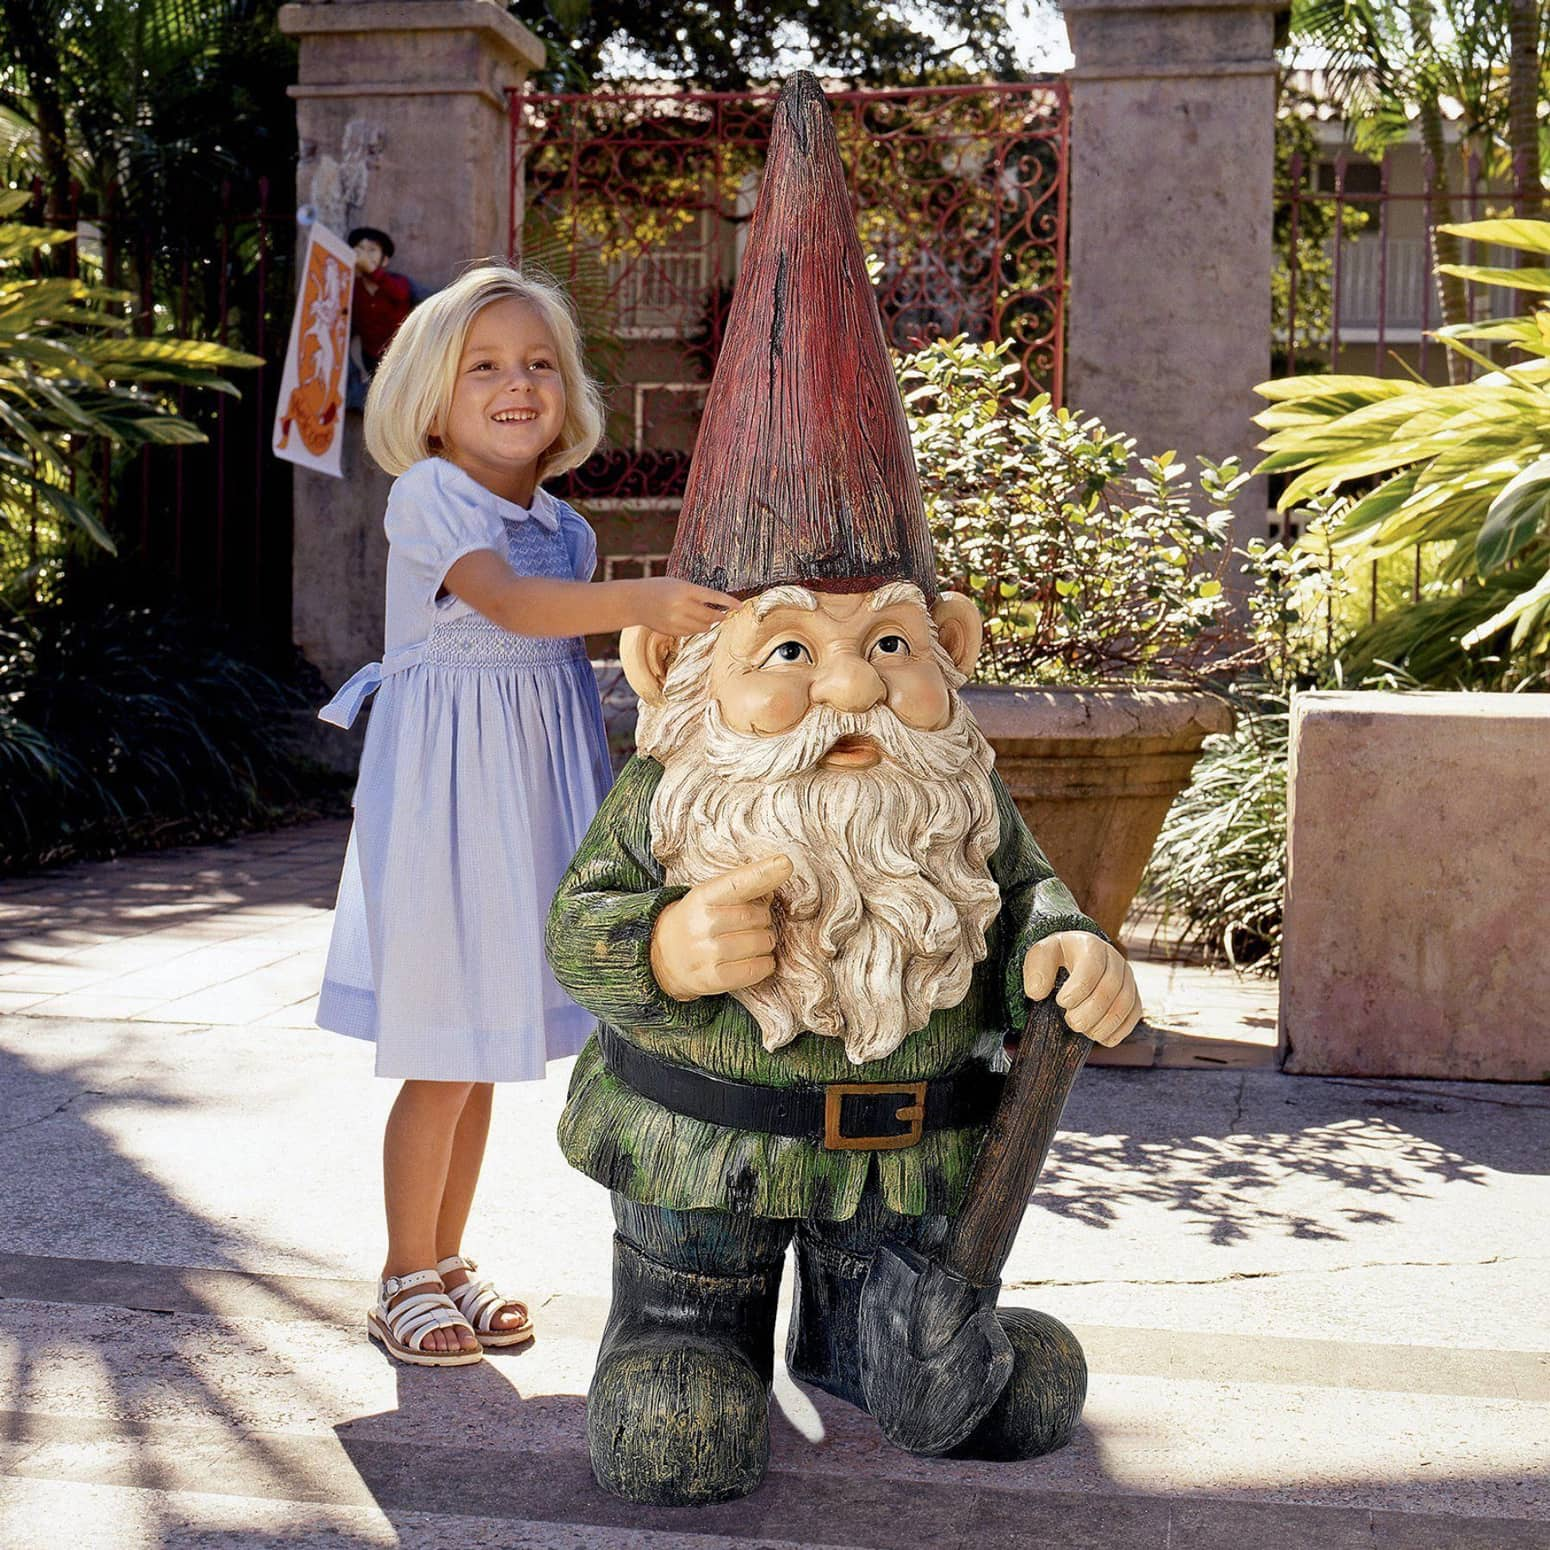 Gigantic Garden Gnome Statue The Green Head